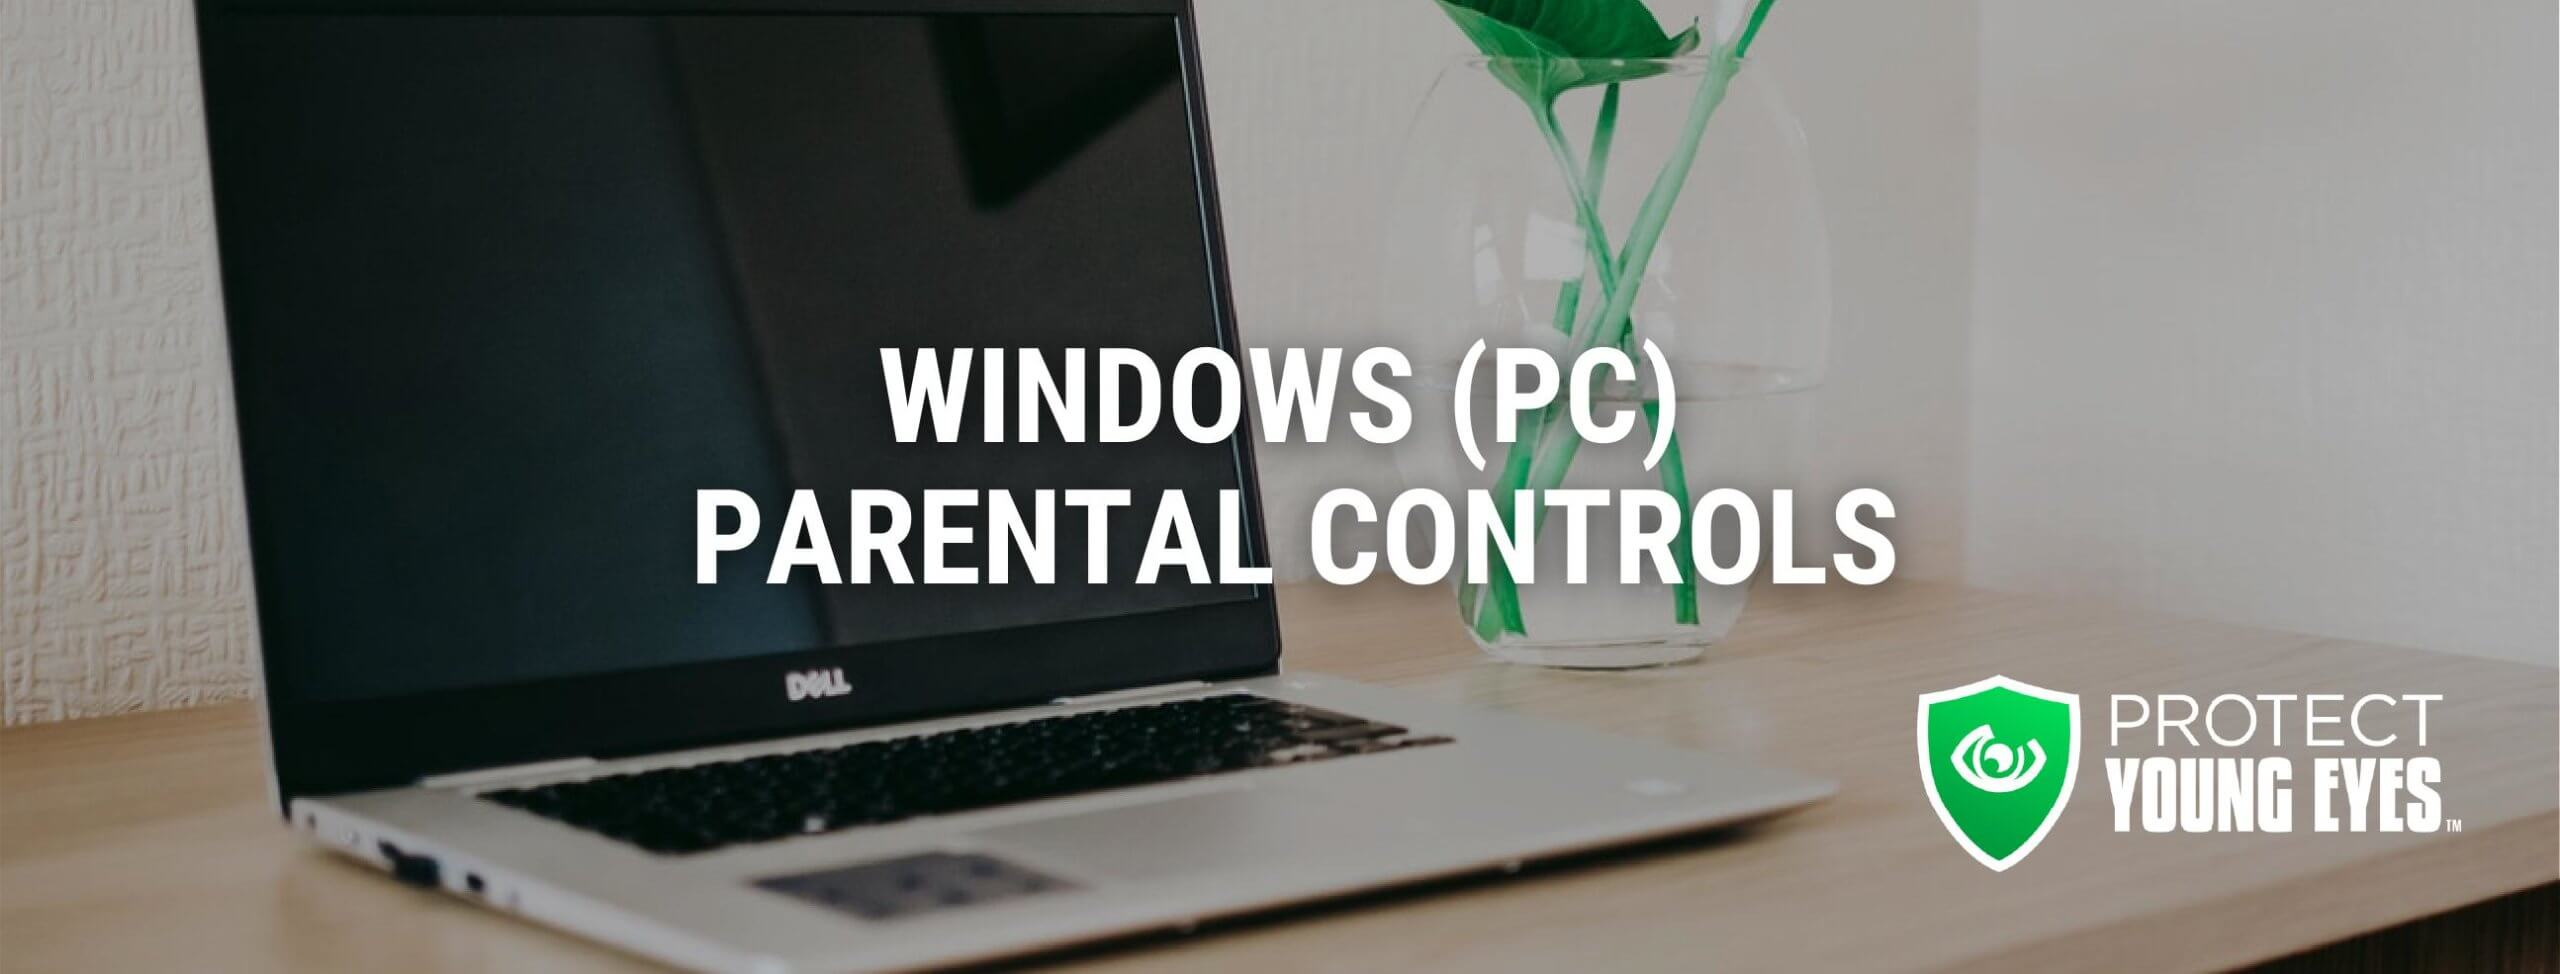 Windows (PC) Parental Controls